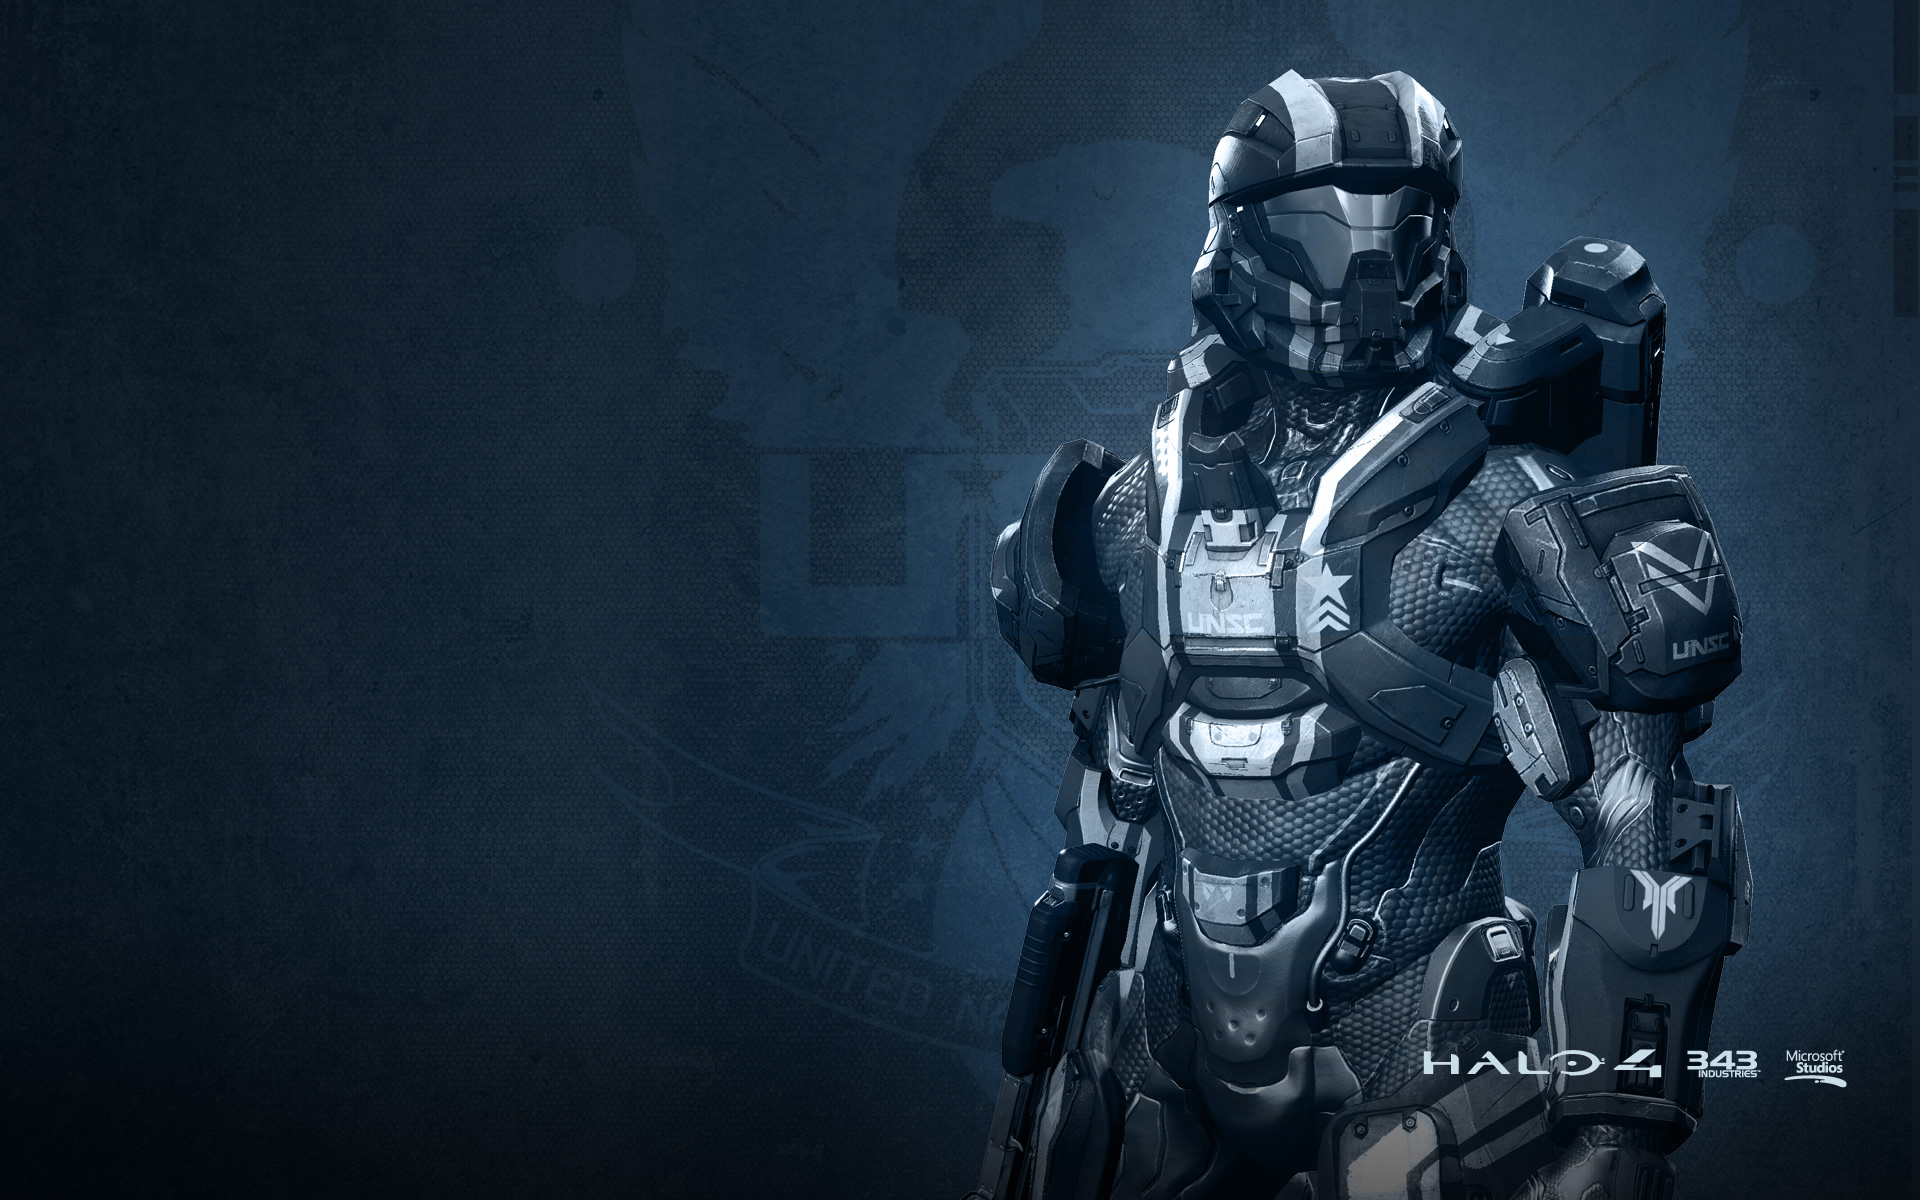 Halo-ODST-HD-Backgrounds-1920%C3%971080-Halo-Ador-wallpaper-wp3806222